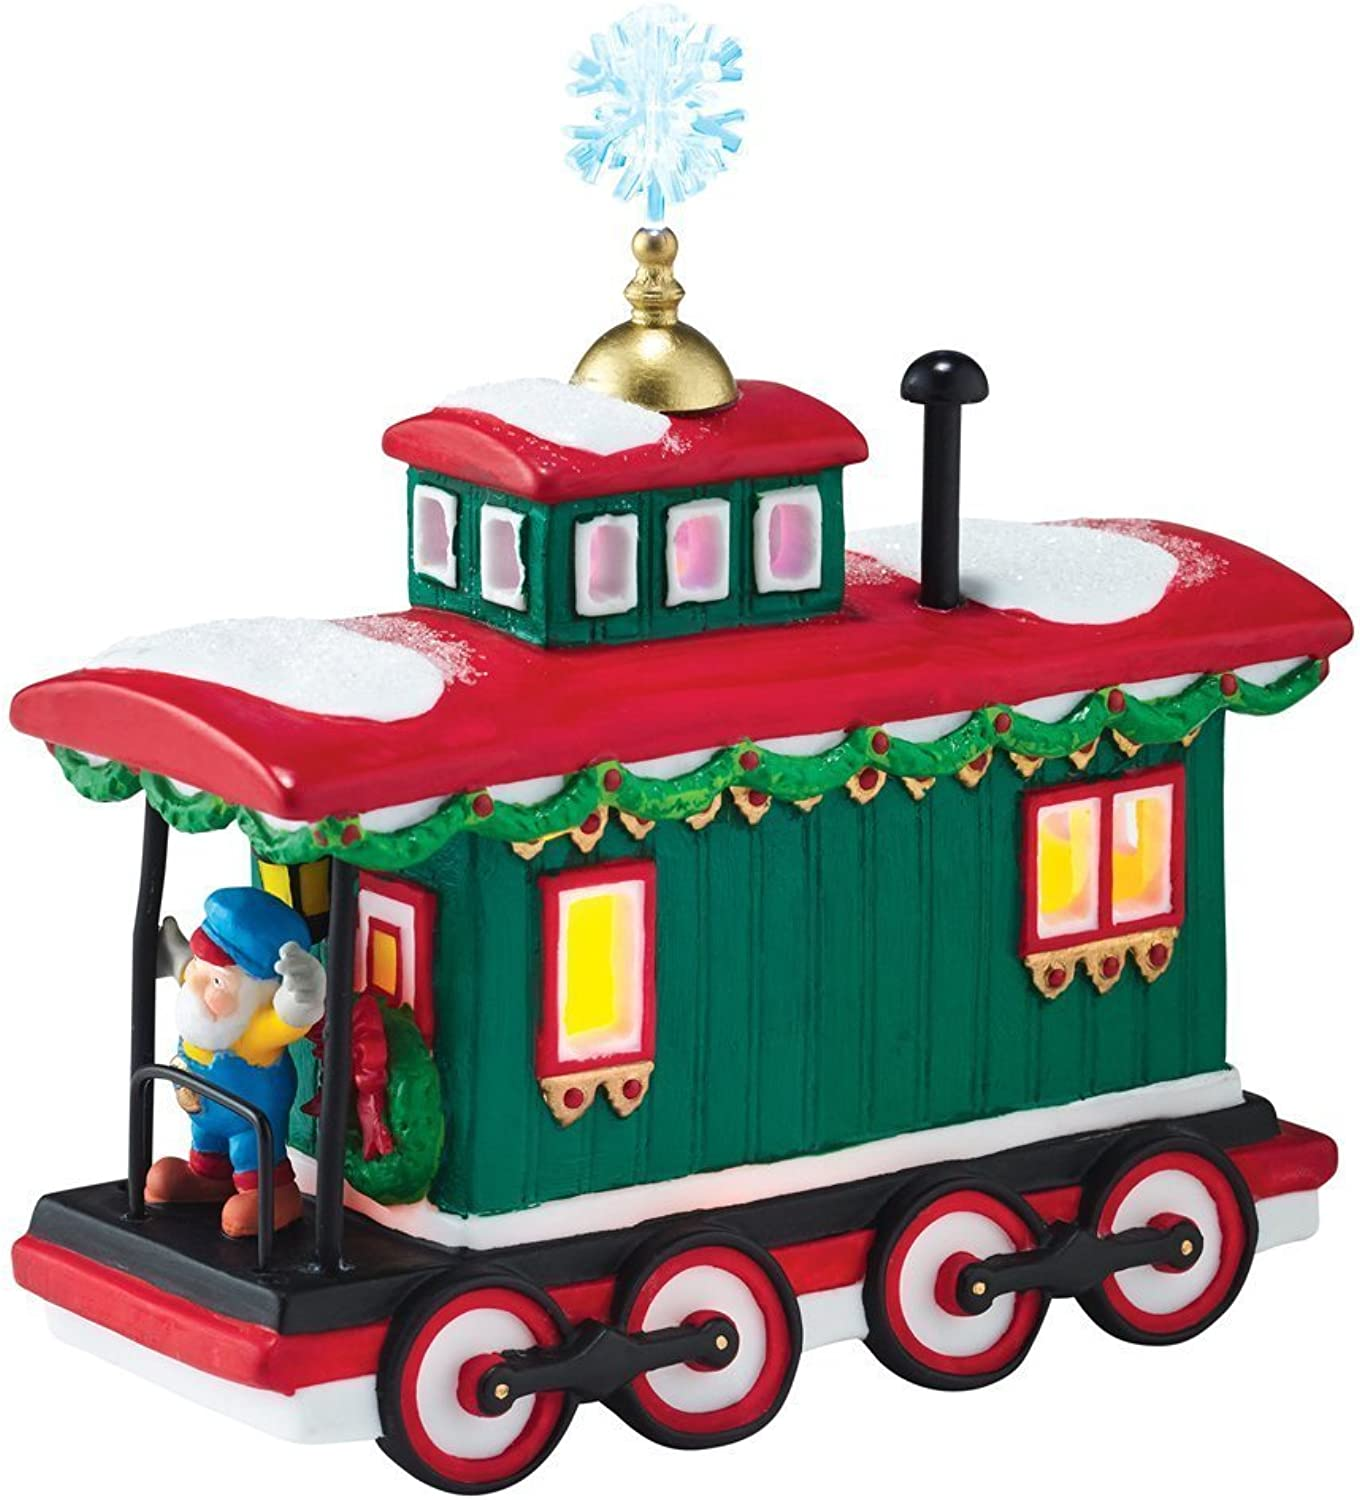 Department 56 North Pole Village Northern Lights Caboose Train Figurine 4050968